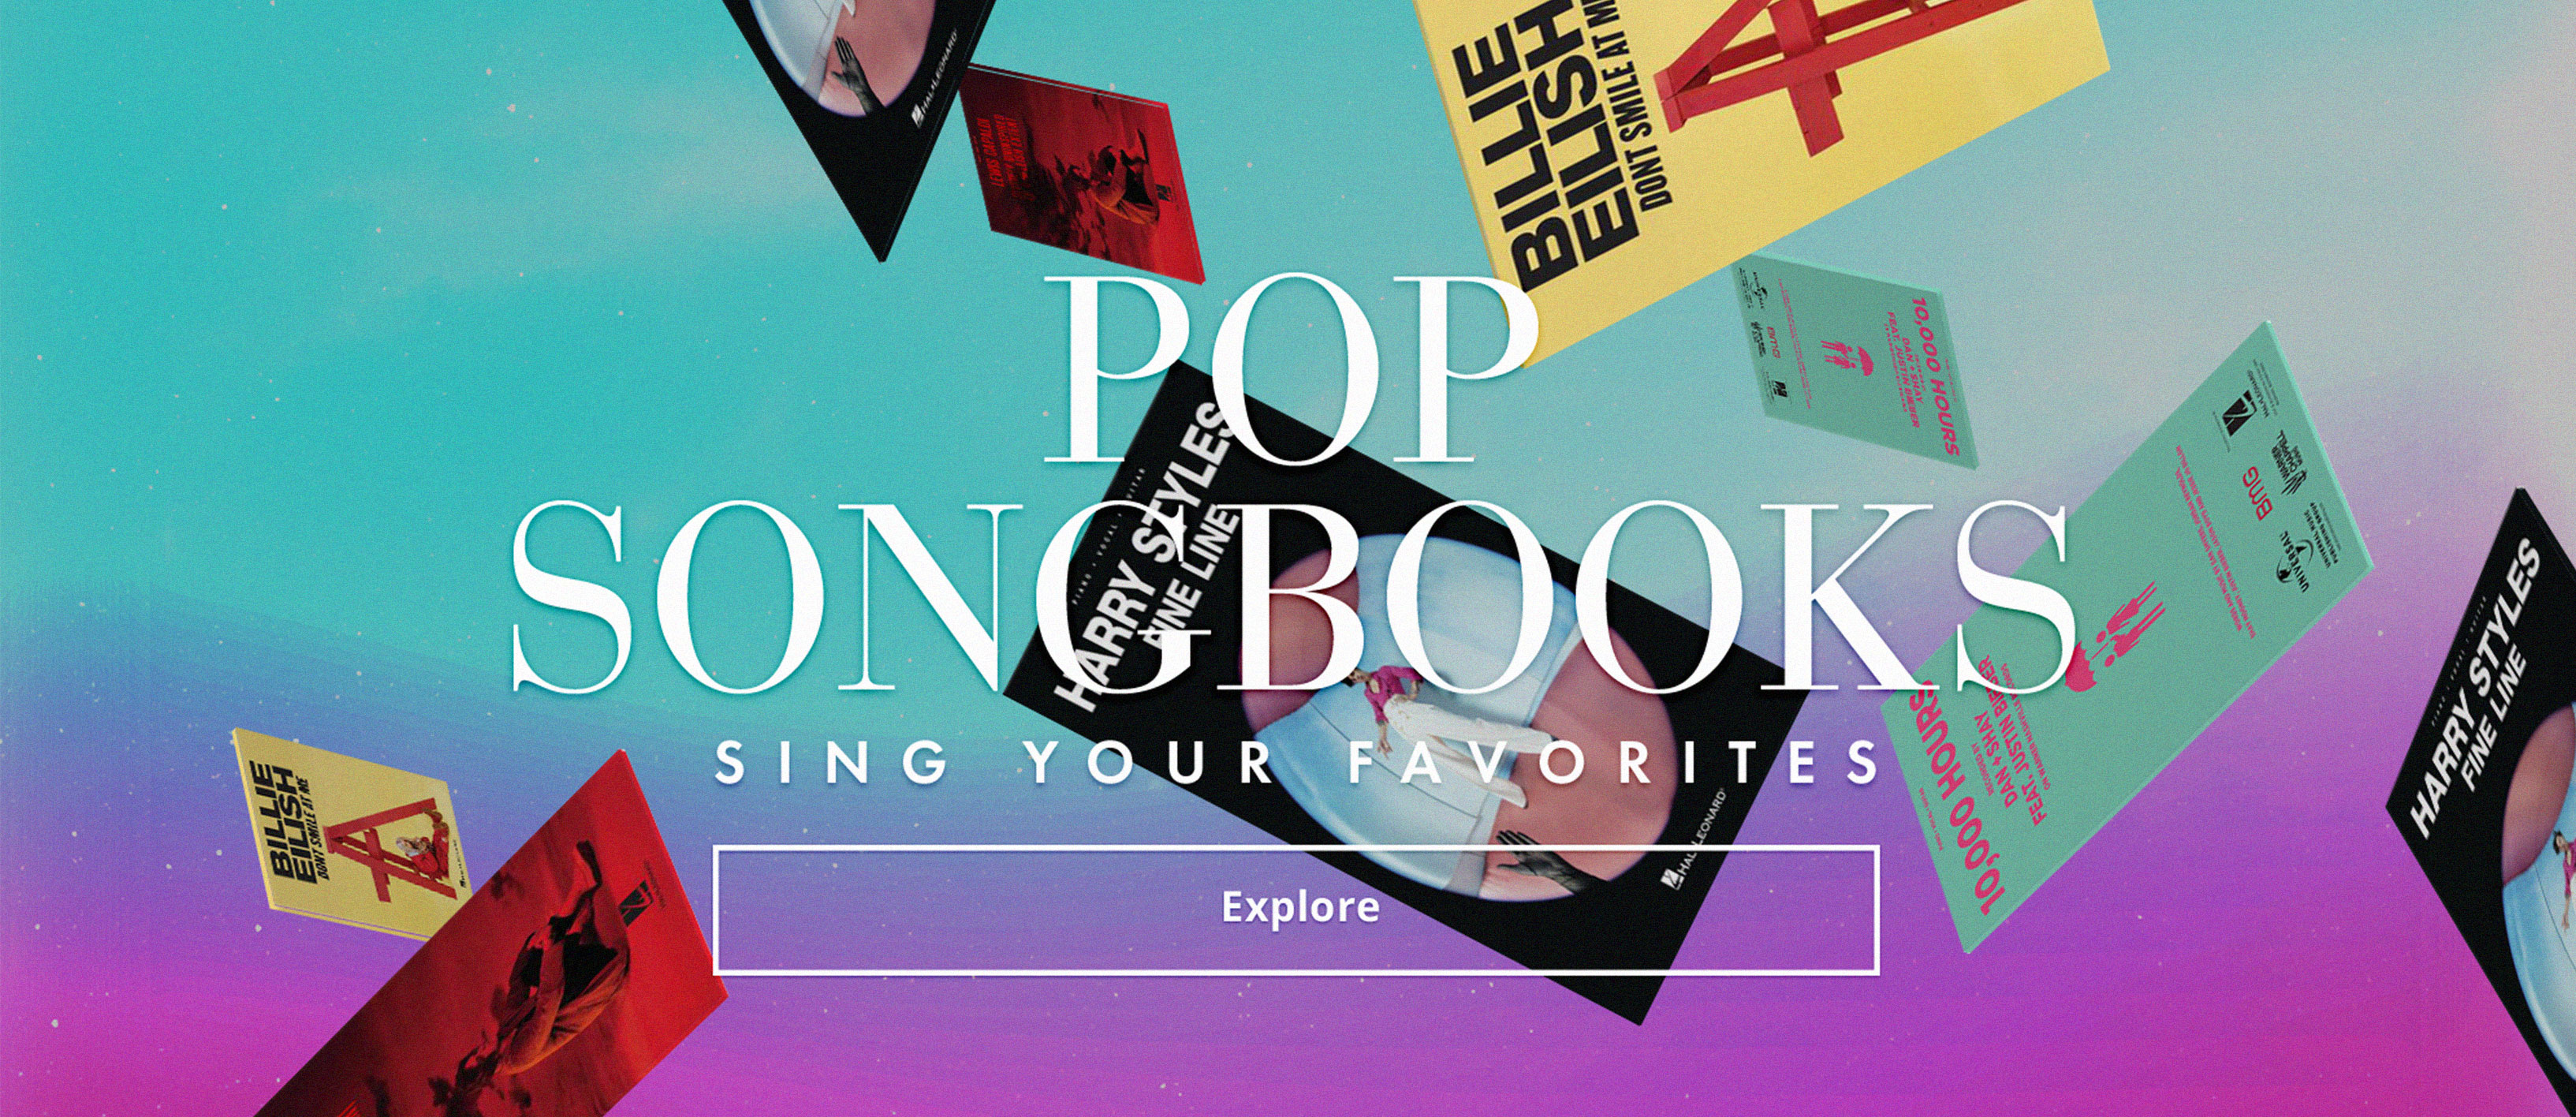 Shop pop vocal songbooks and sing your favorites!